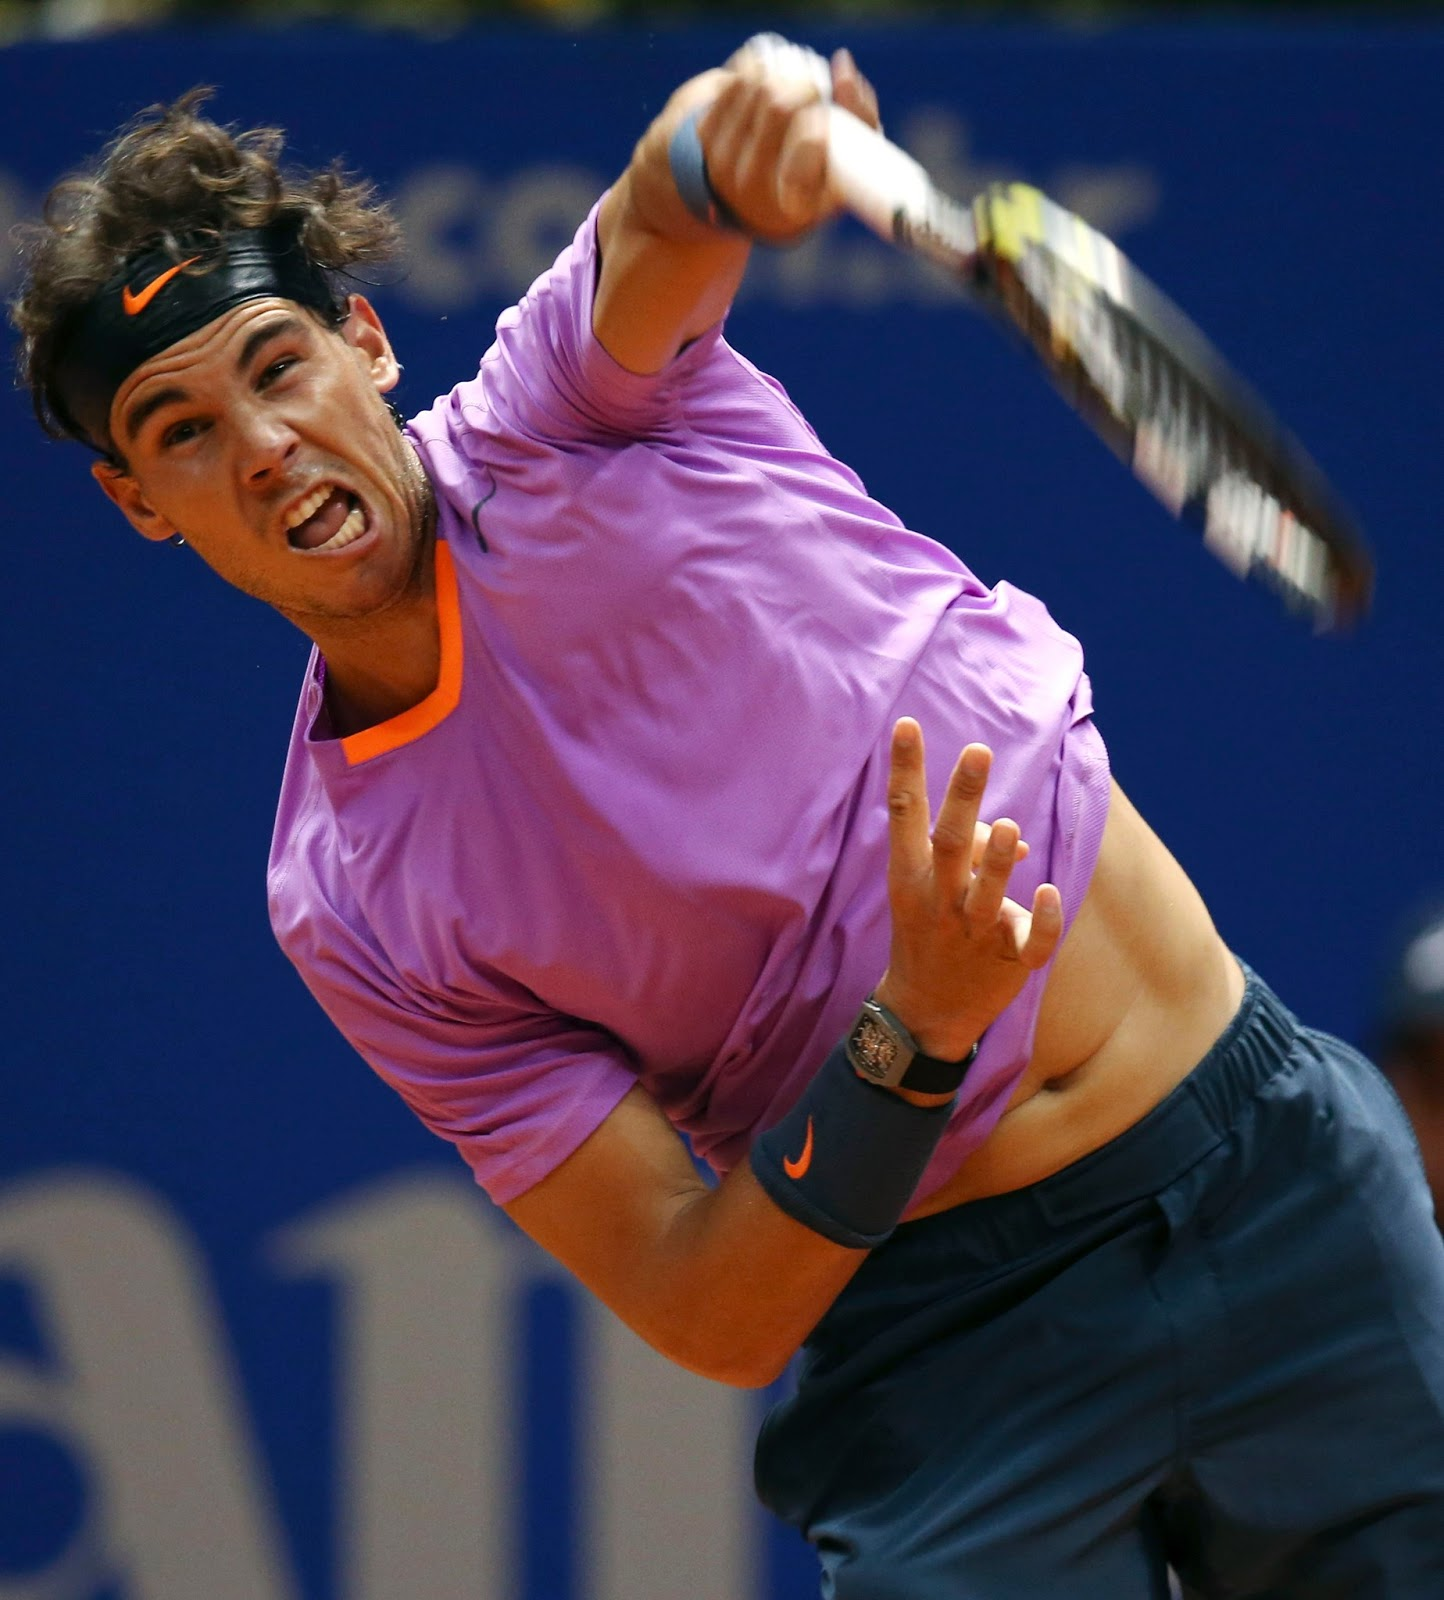 rafael nadal profile and fresh images 2013 all tennis